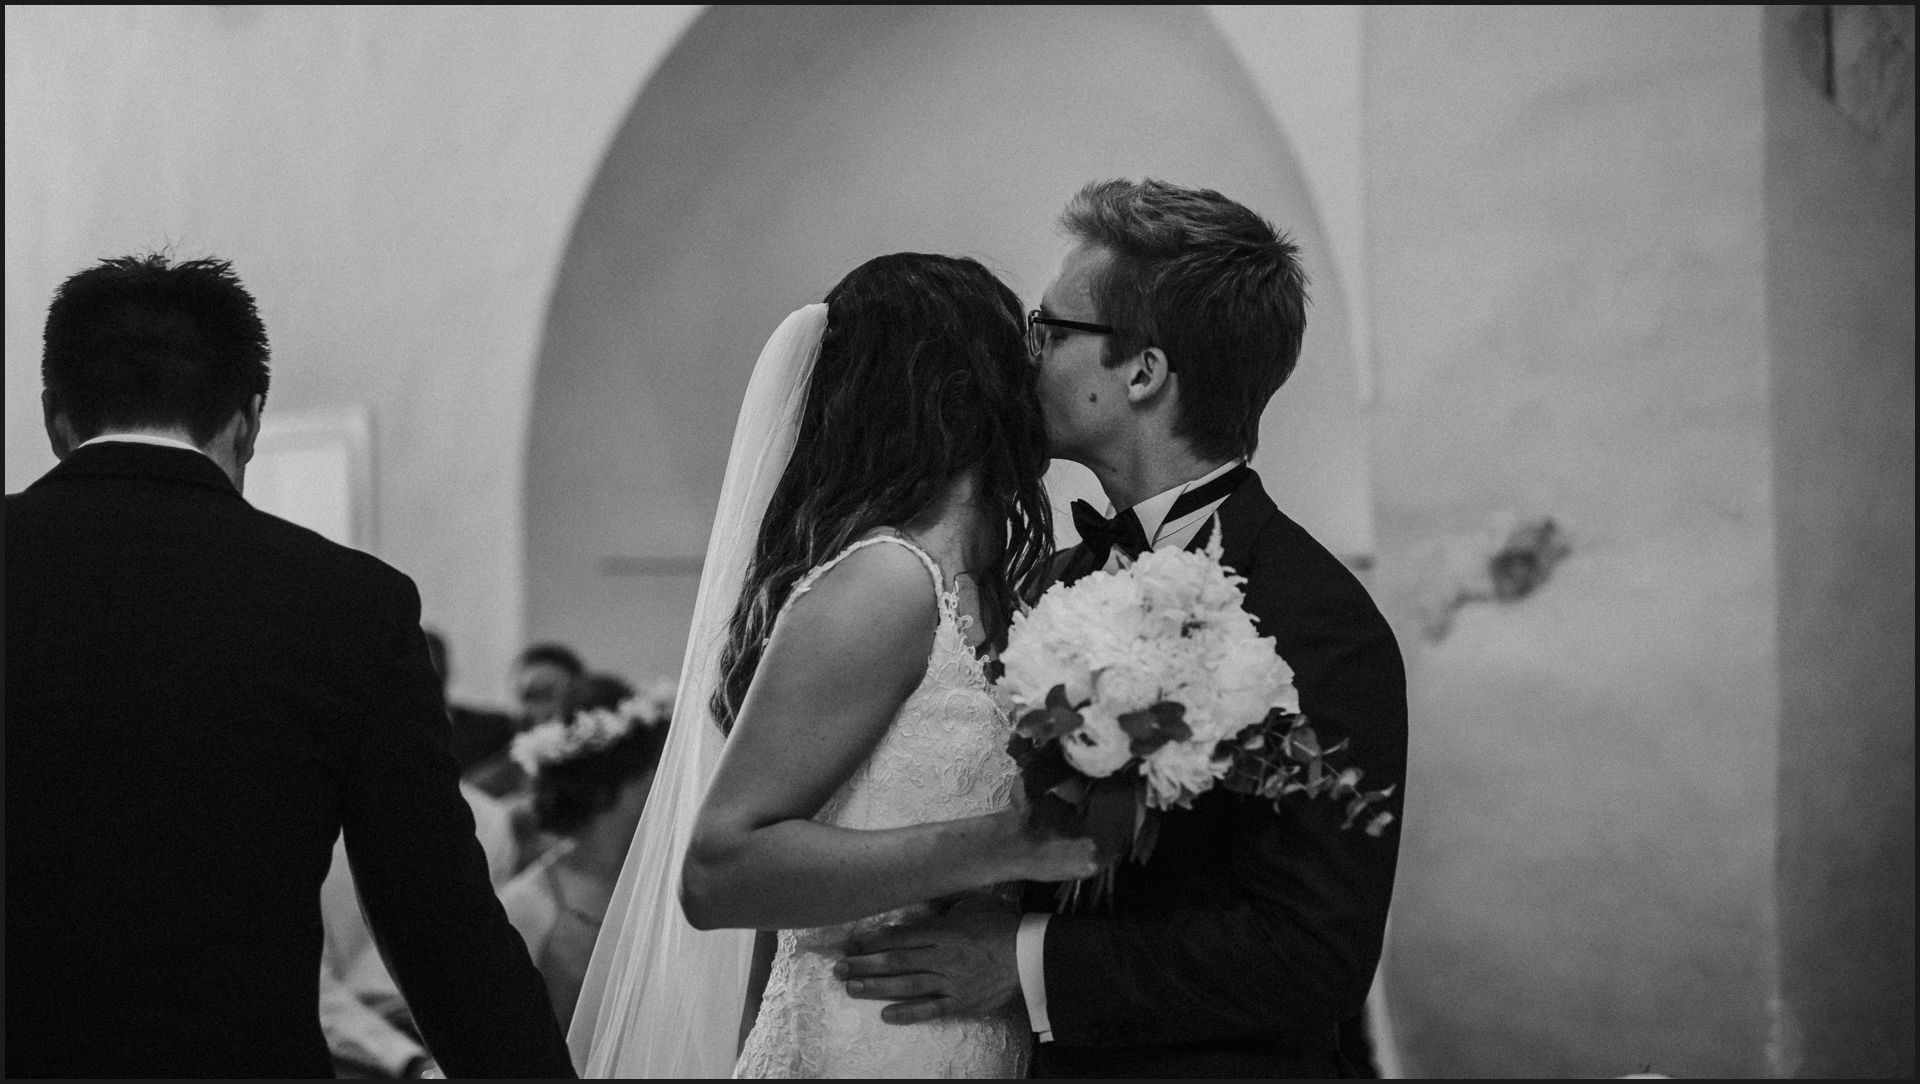 bride, groom, wedding, umbria, nikis resort, ceremony, black and white, kiss